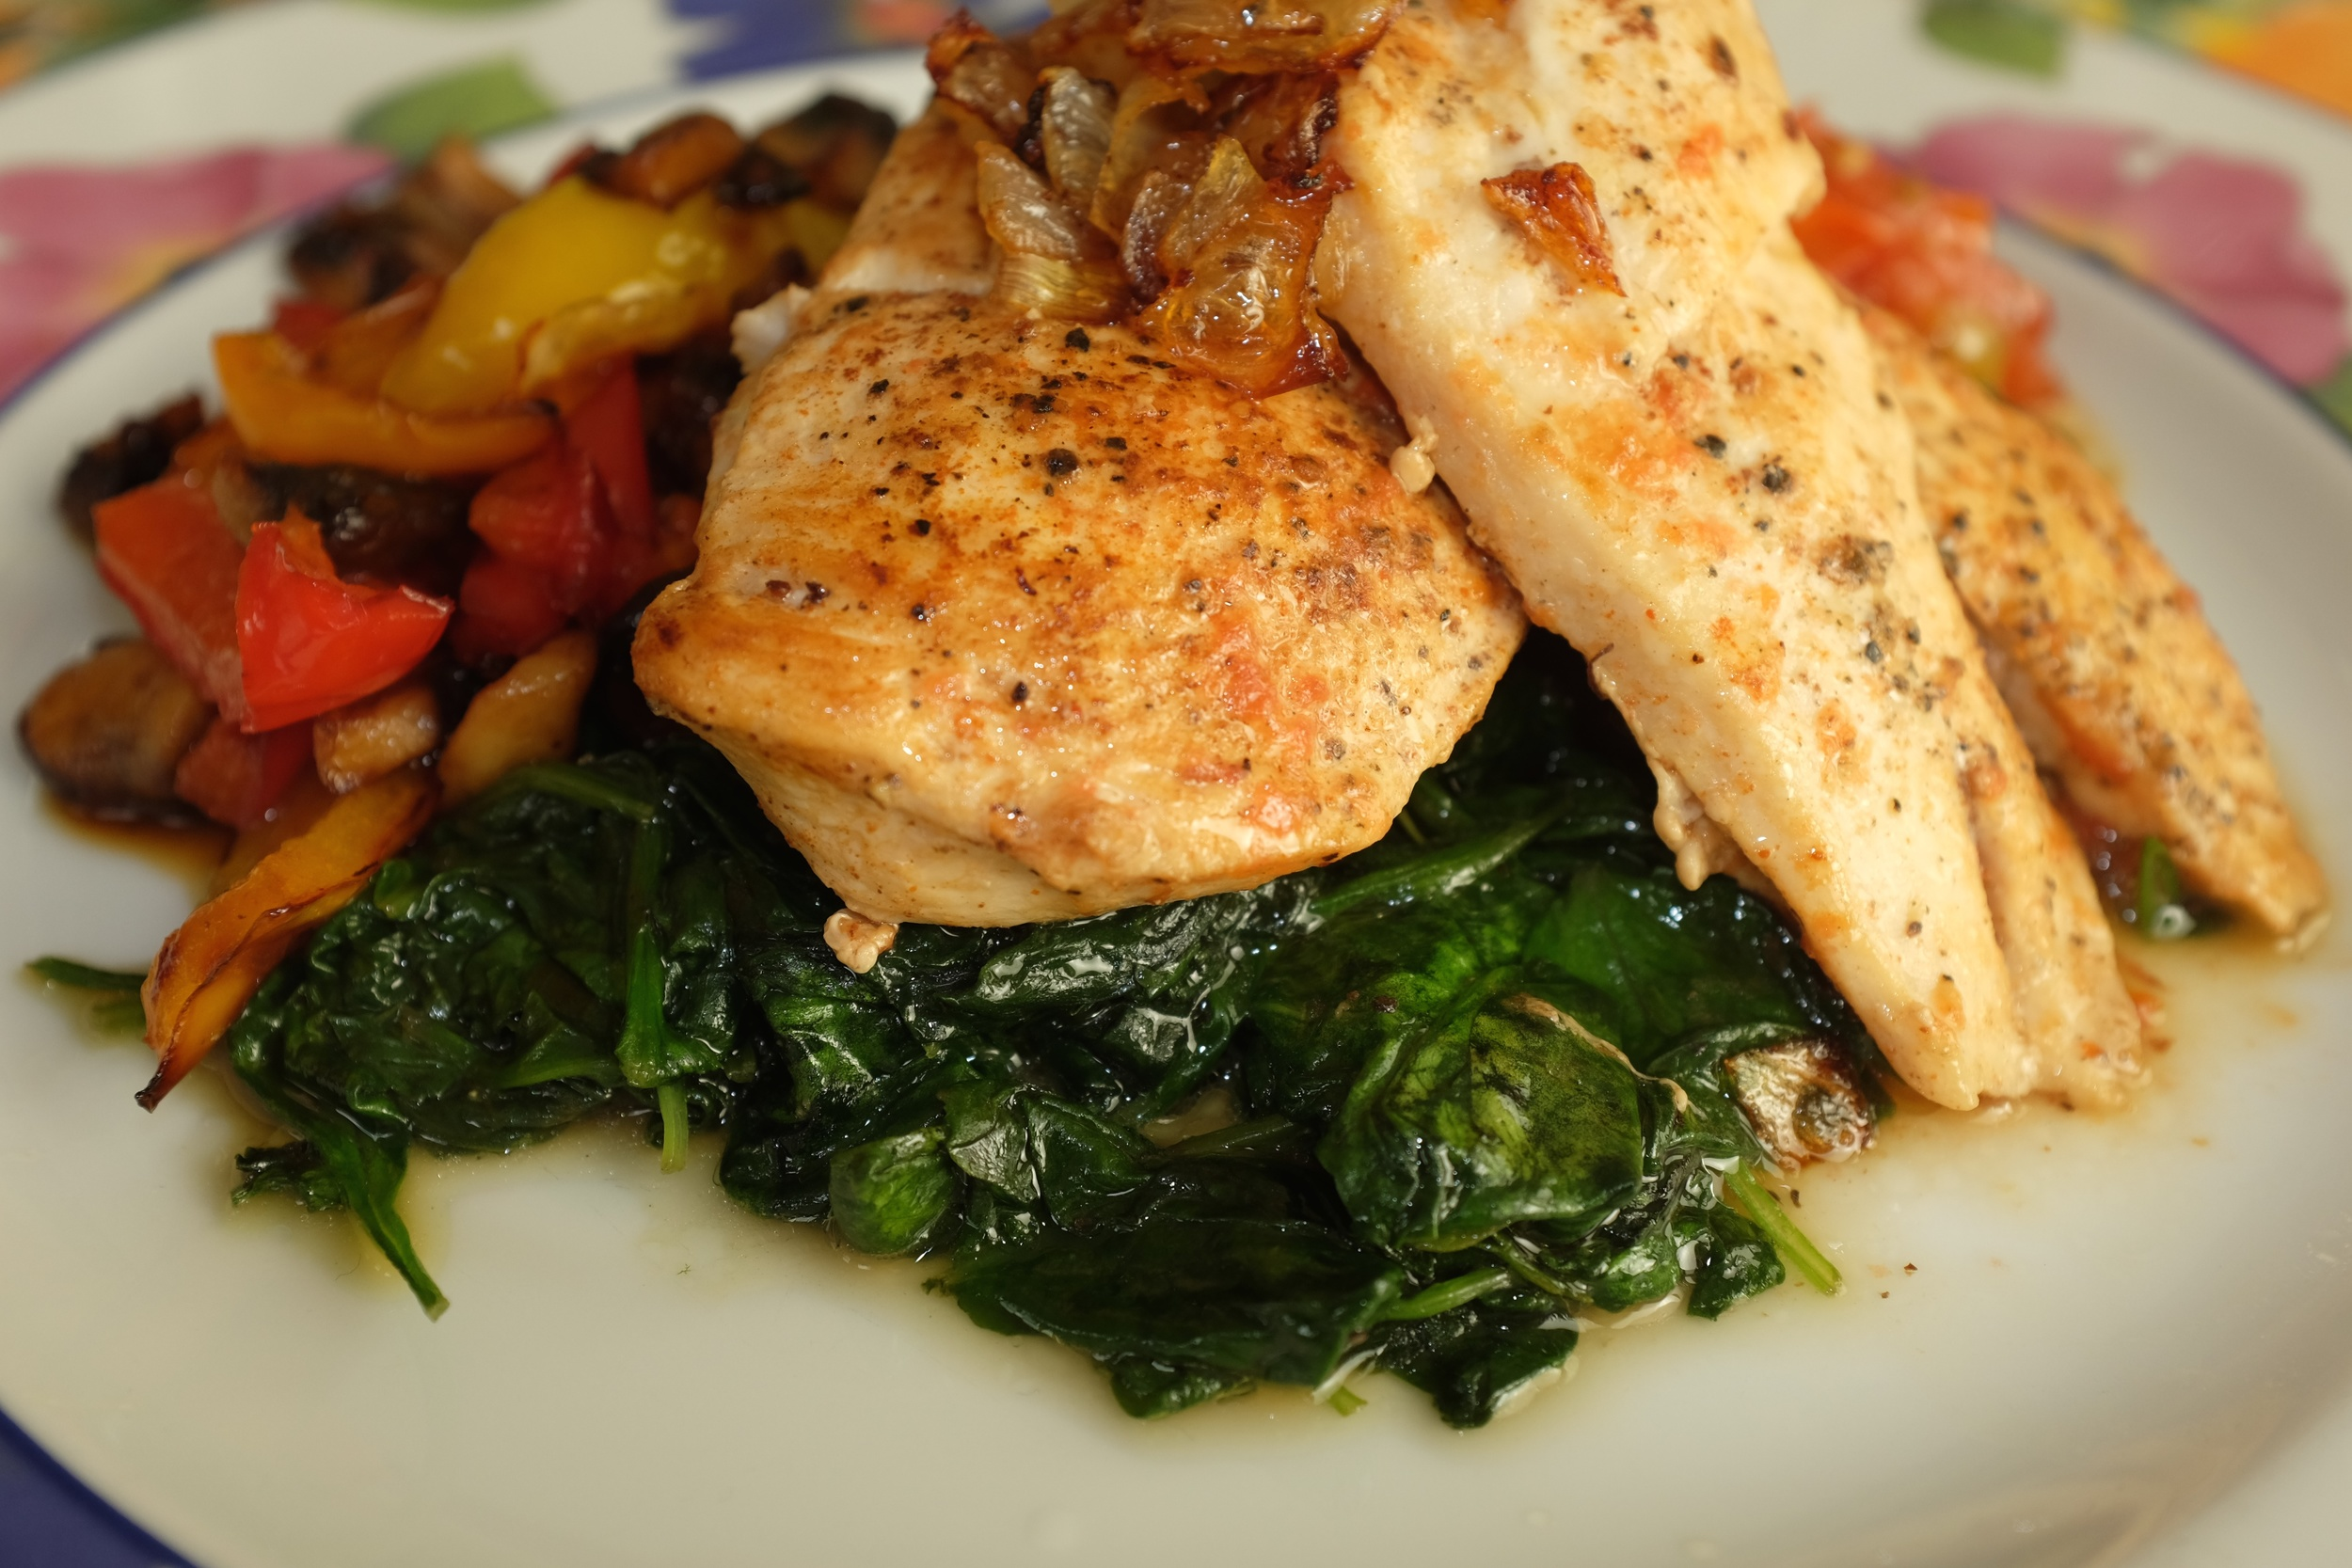 Sautéed Chicken atop Sautéed Spinach with a side of mushrooms and bell peppers